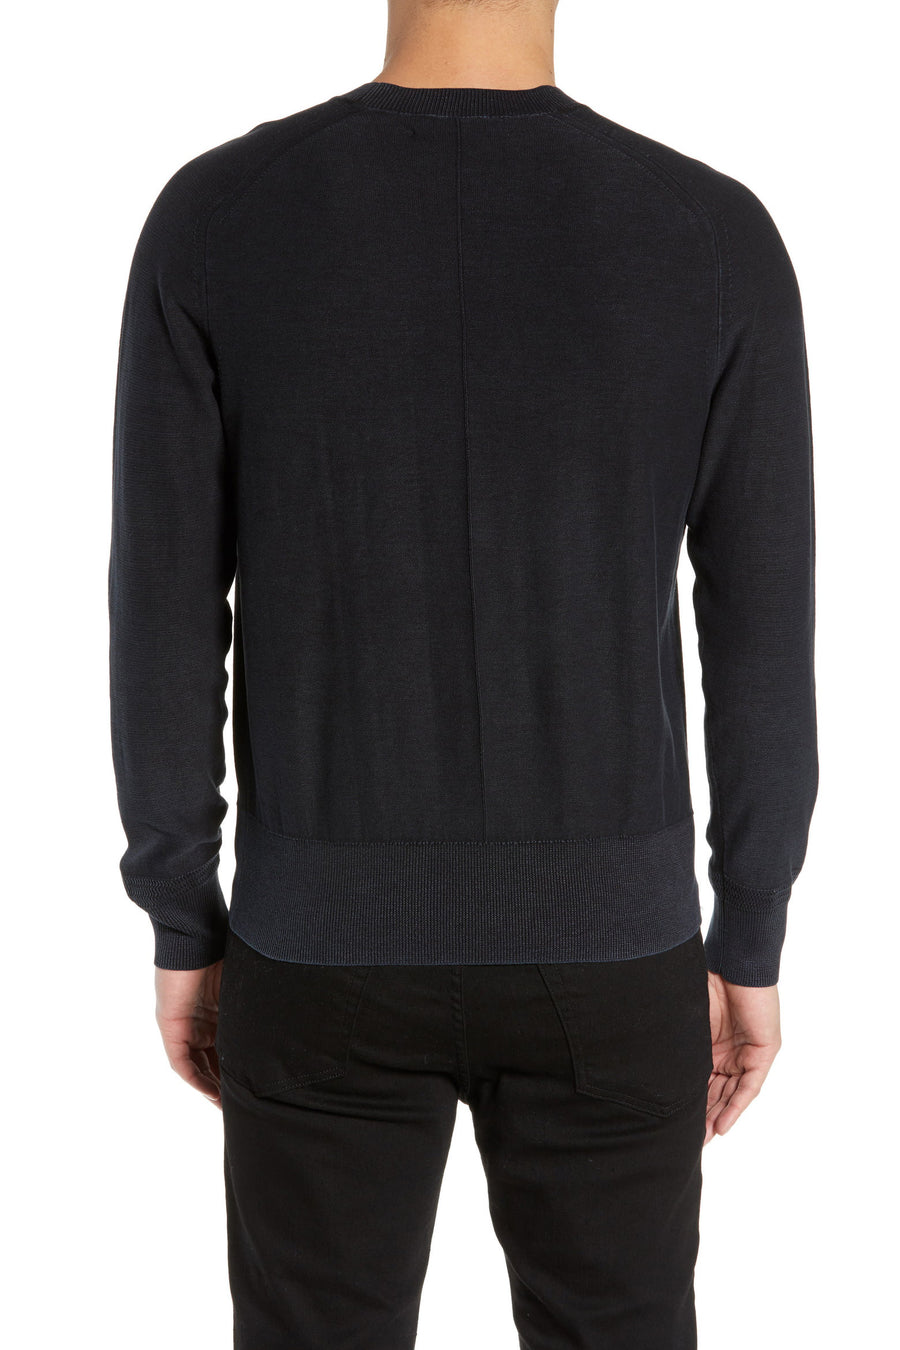 Lance Crewneck Sweater - Shadow Grey